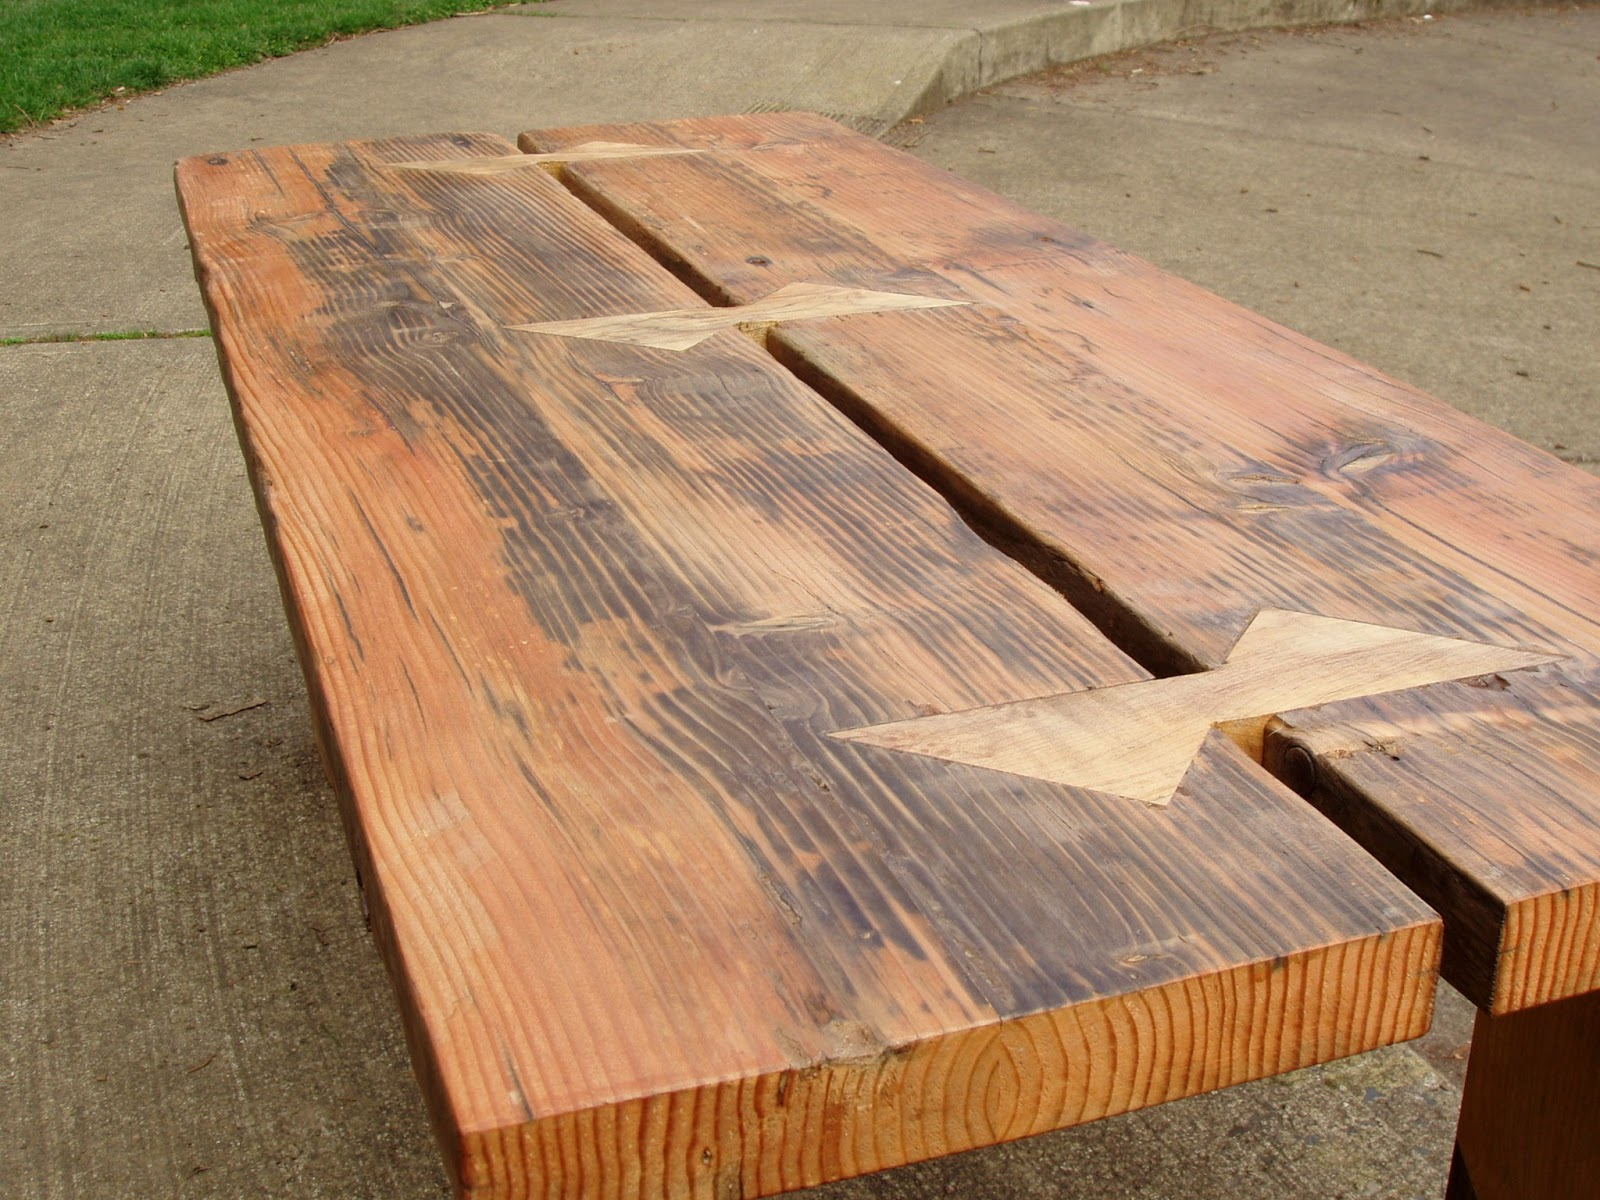 Reclaimed Wood Furniture Portland Images Making Wood